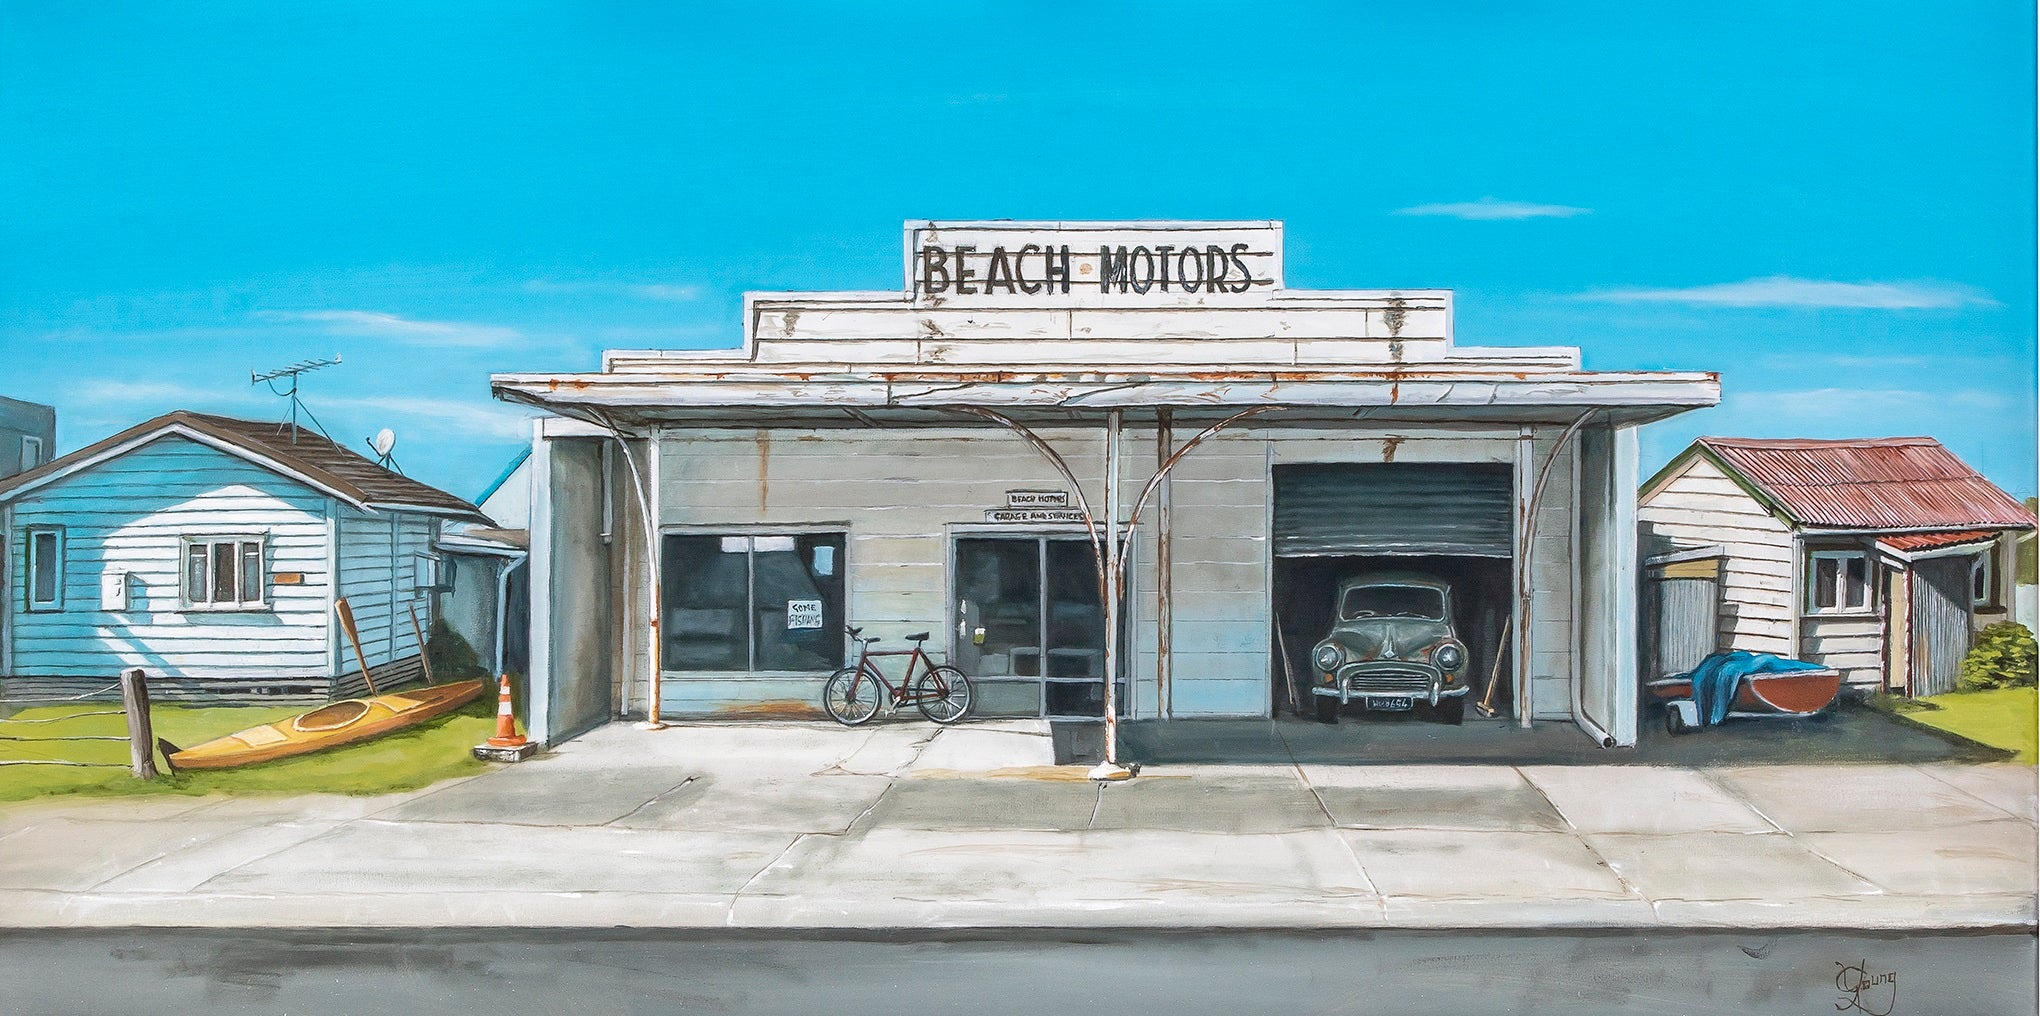 Waihi Beach Motors - grahamyoungartist.com - Original Artwork and Prints by New Zealand Artist Graham Young